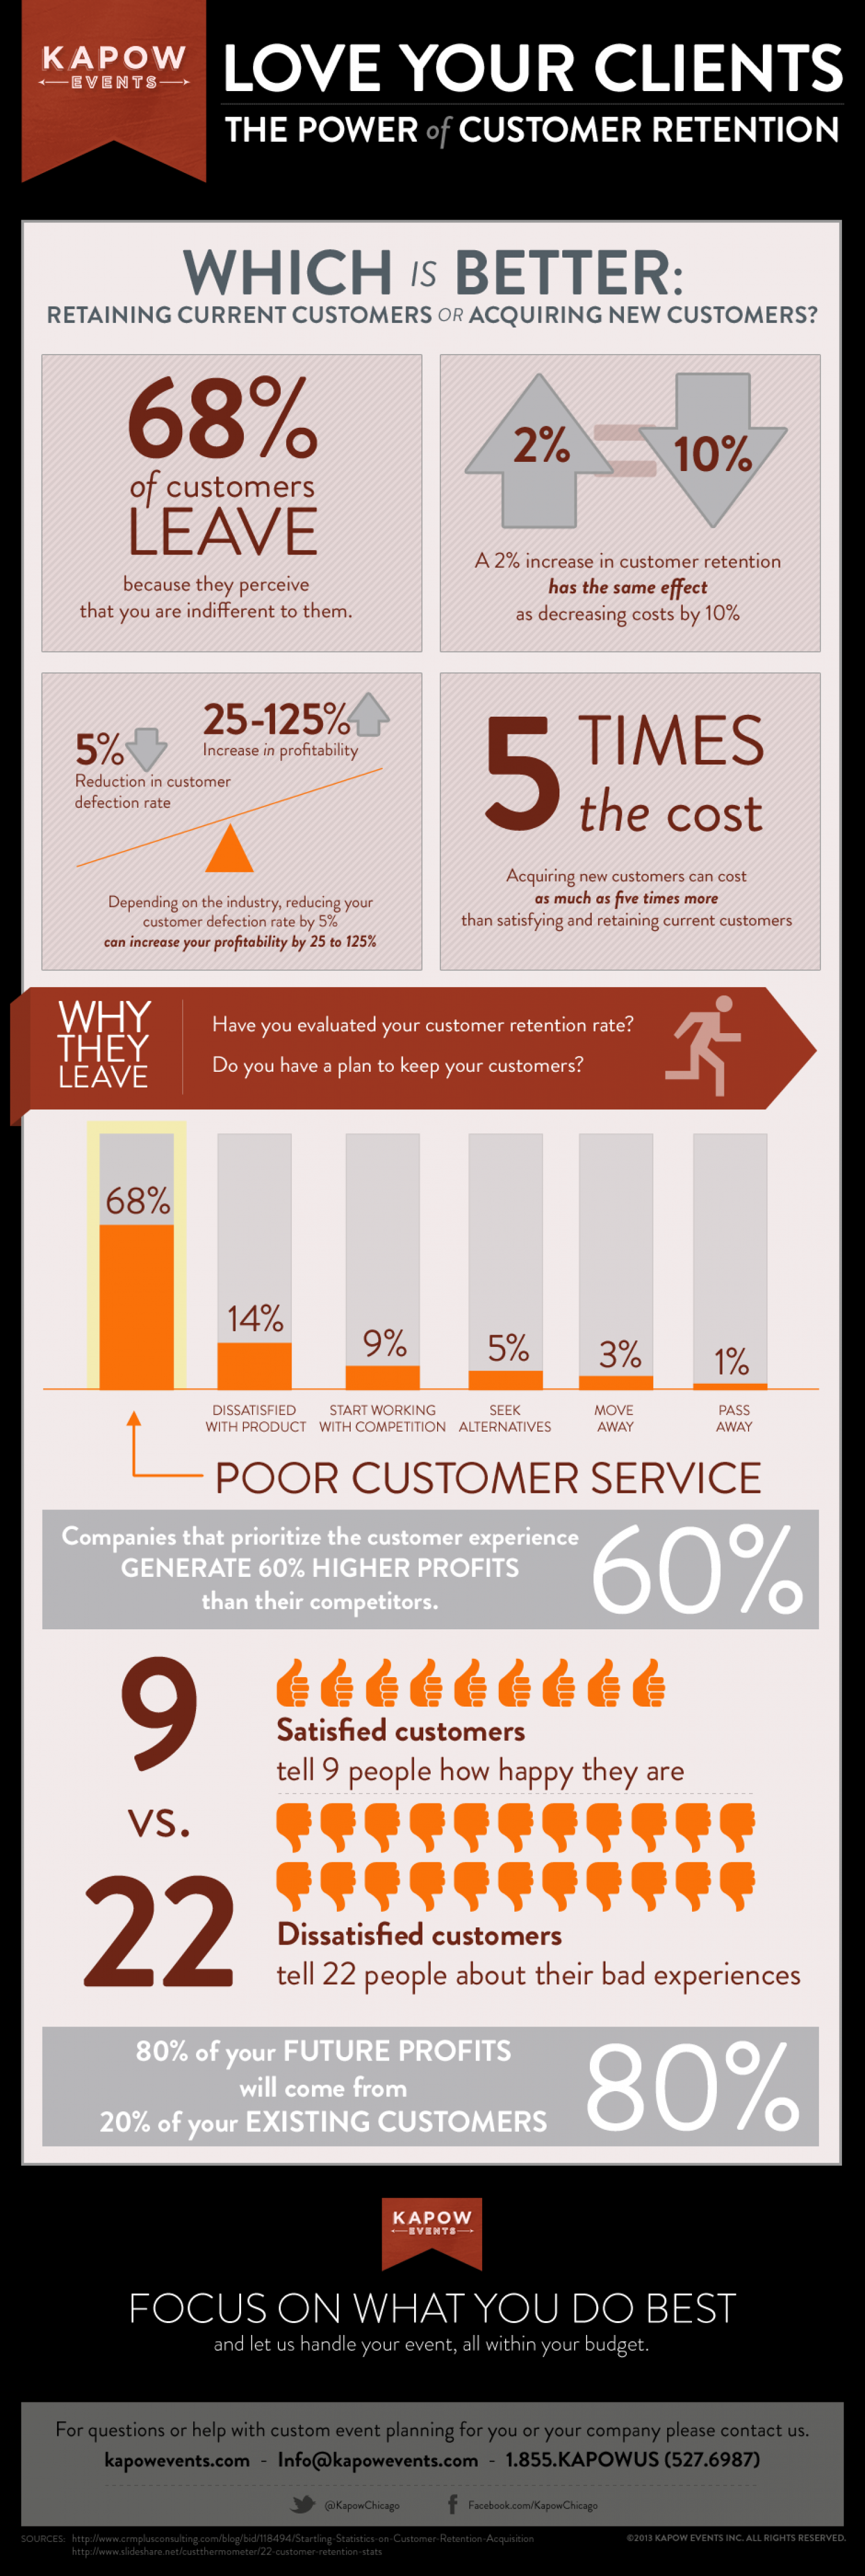 The Power of Customer Retention Infographic